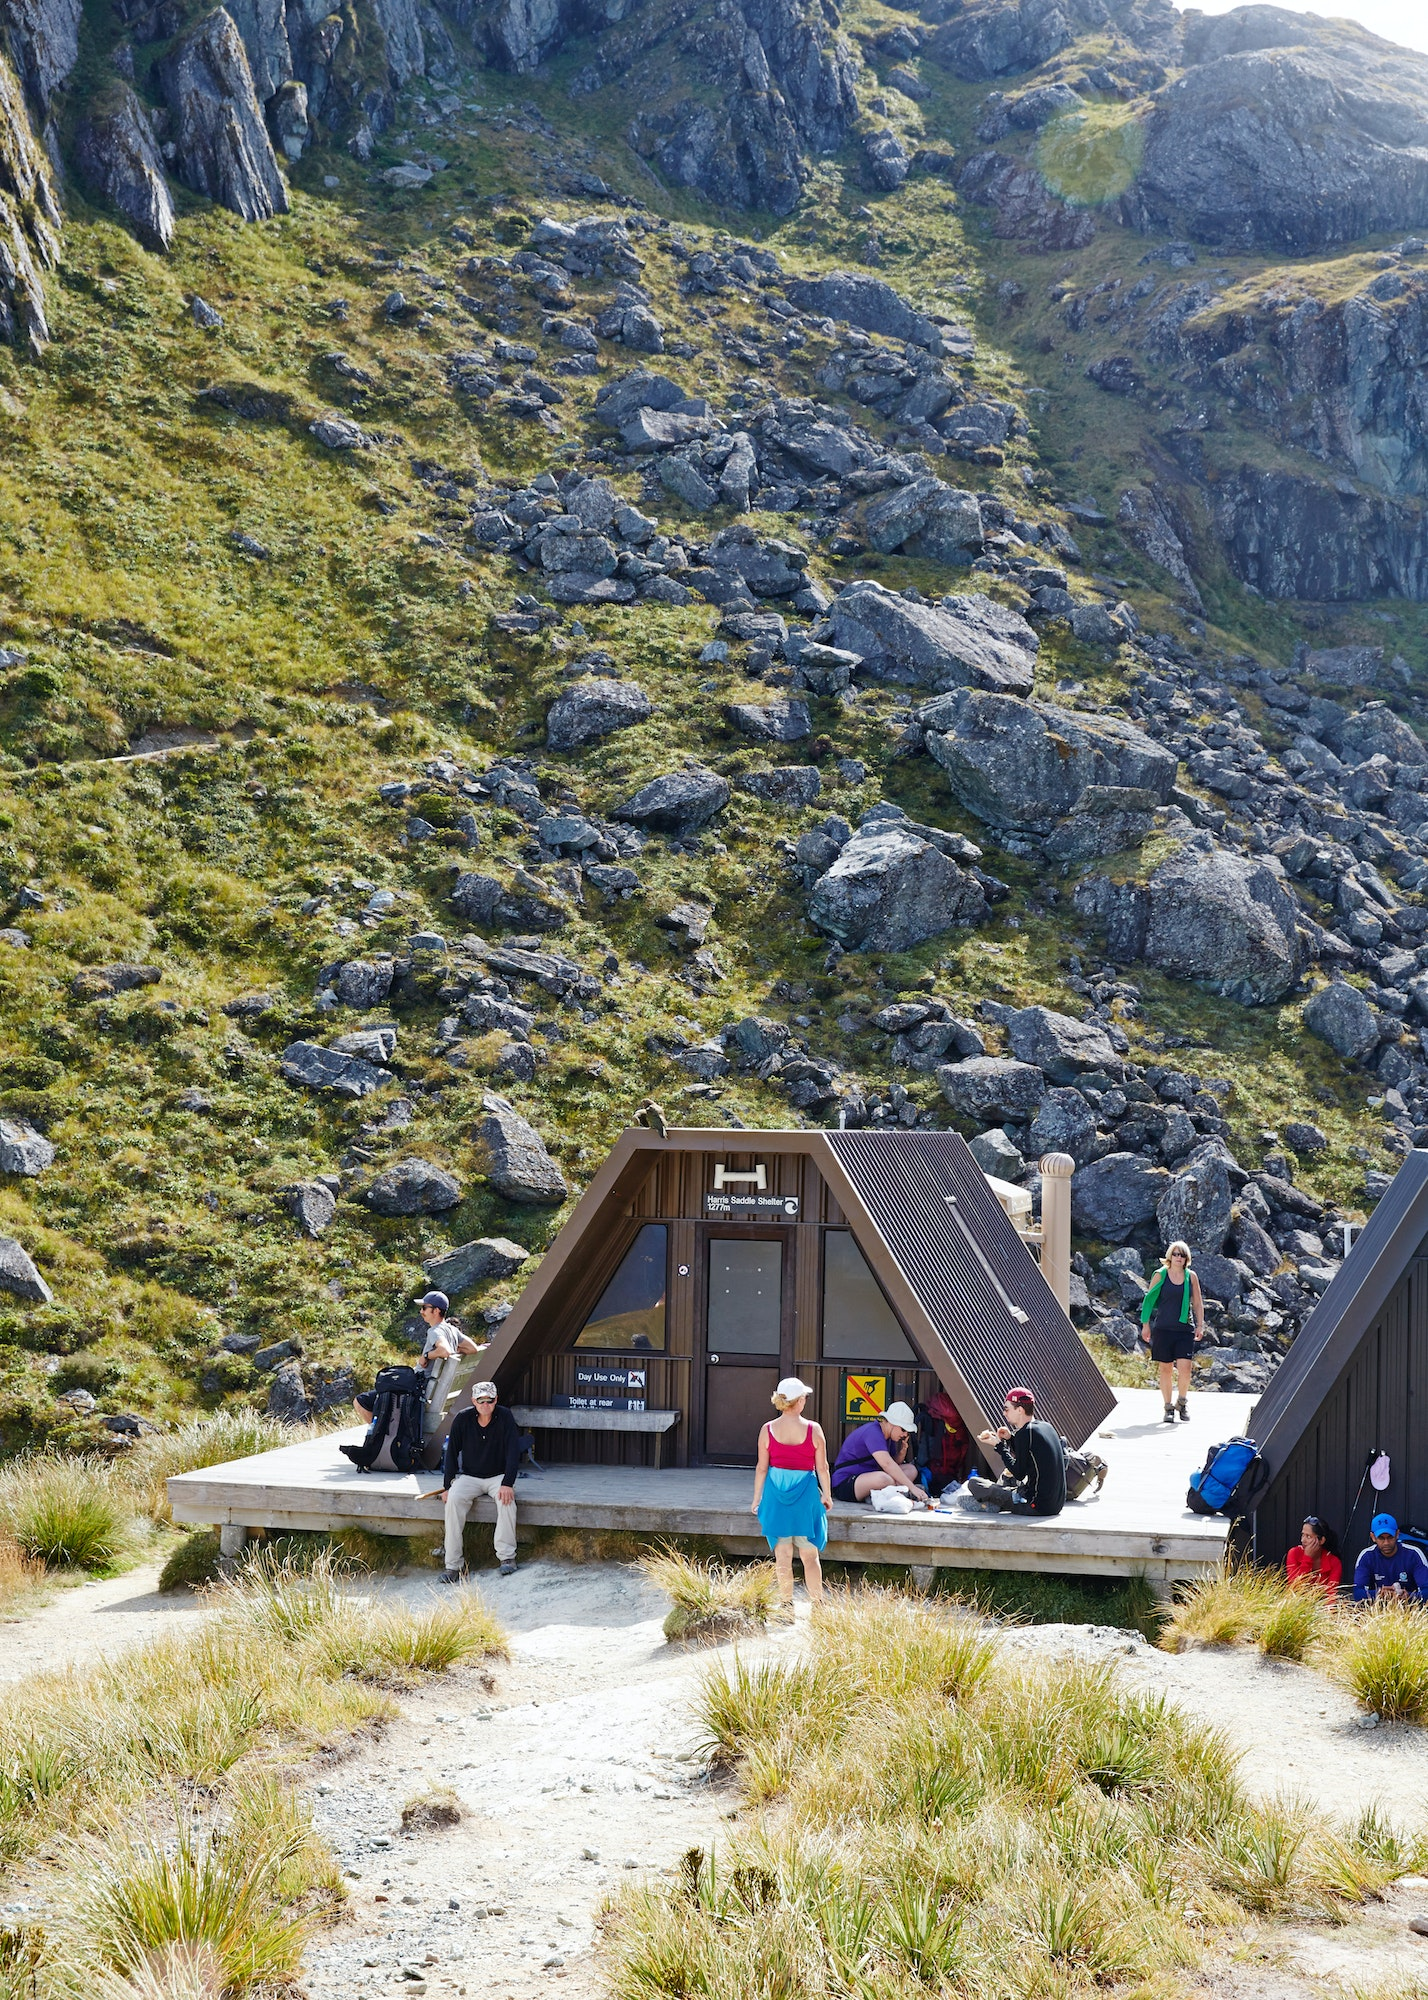 After a long day of trekking, hikers enjoy a rest at the trailside Harris Saddle warming huts.